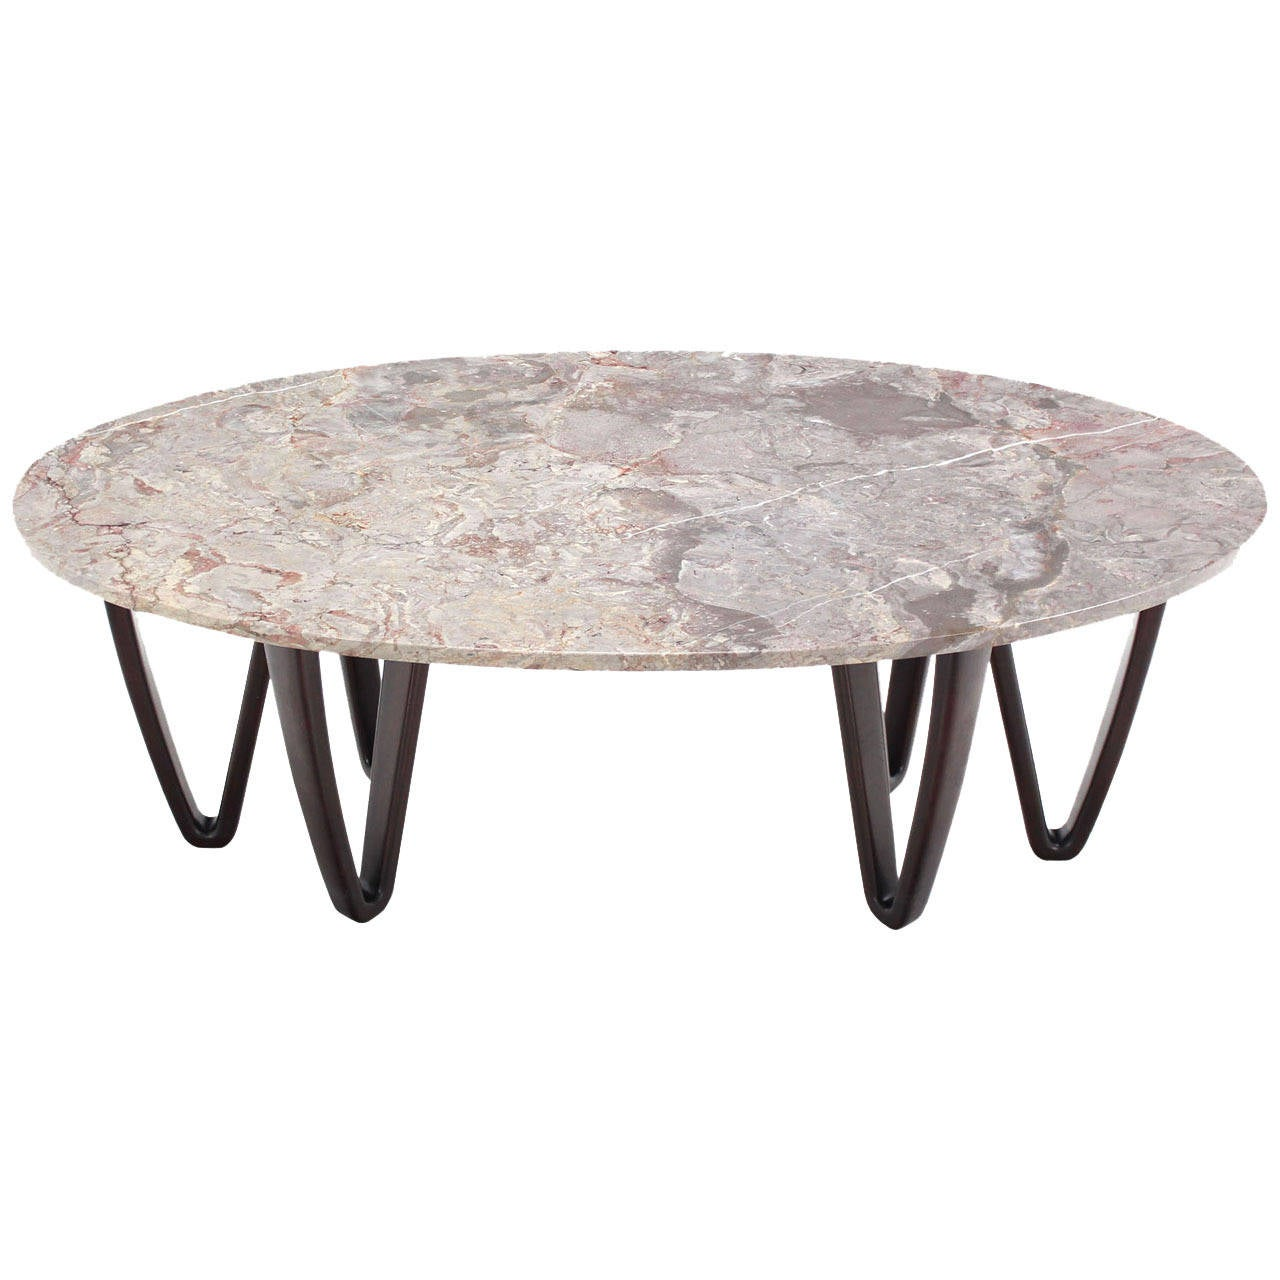 Oval marble top coffee table on wooden hair pin legs at 1stdibs Stone coffee table top